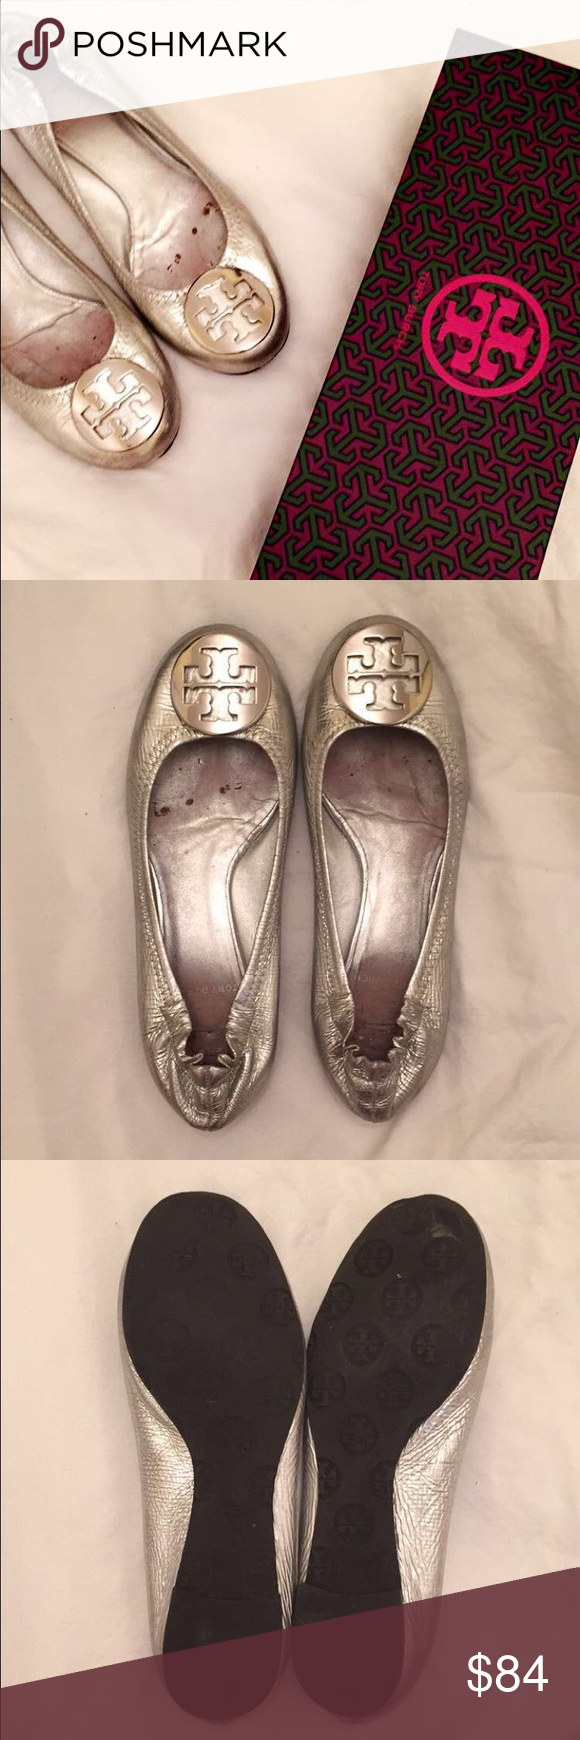 Tory Burch Reva Flats Silver flats in good condition. Box is not the original box Tory Burch Shoes Flats & Loafers